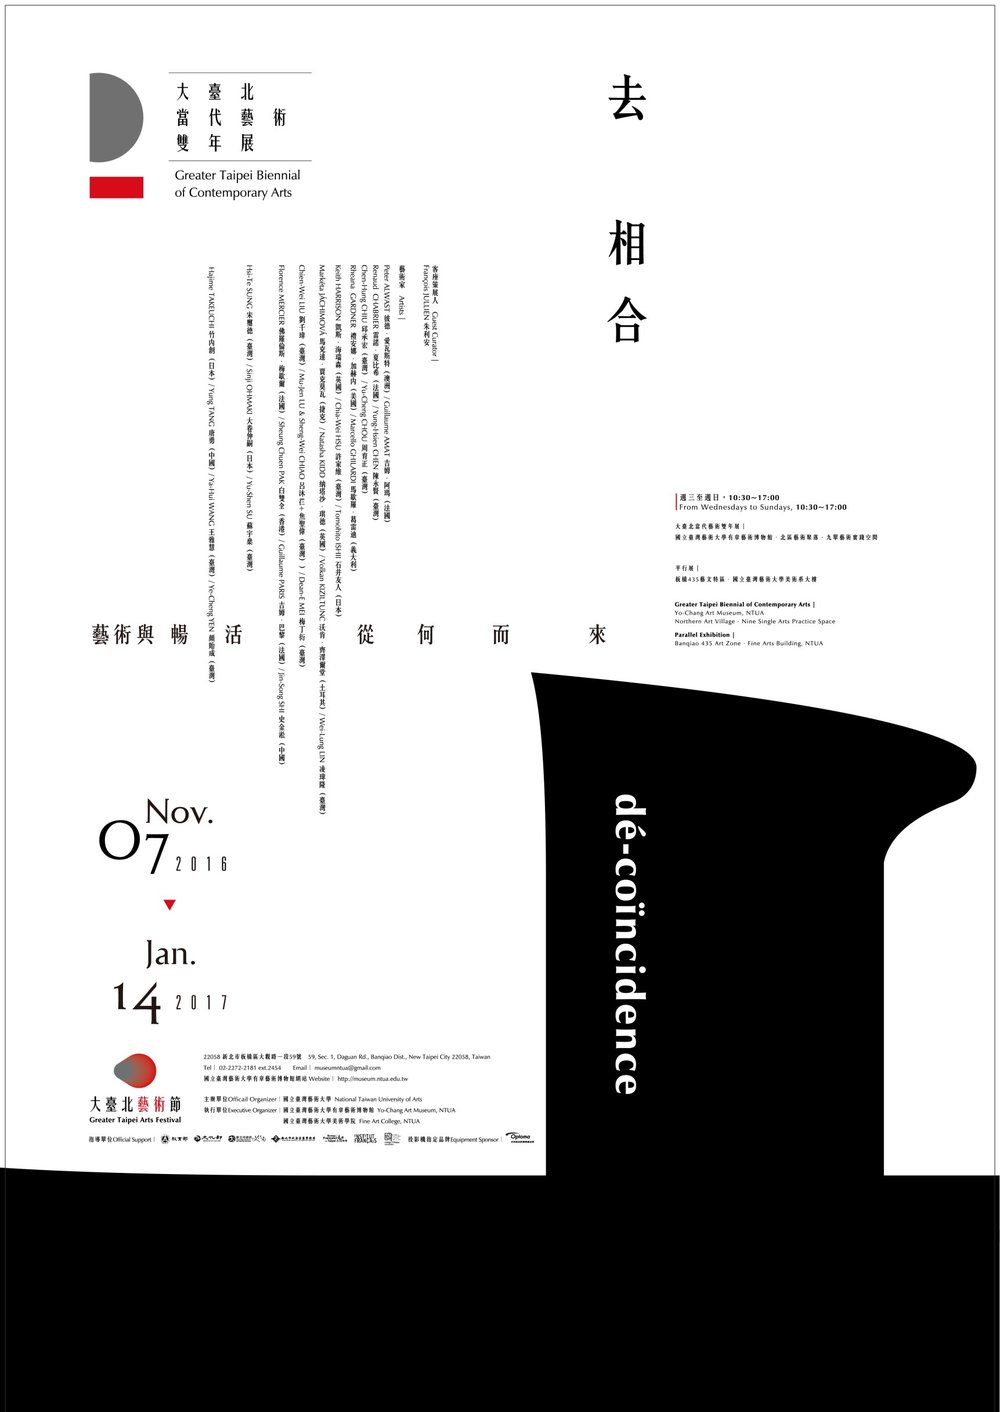 dé-coïncidence - Greater Taipei Biennal of Contemporary Arts7 November 2016 - 14 January 2017National Taiwan University of the ArtsTaipei, Taiwancurated by François Jullienlink to curatorial statement